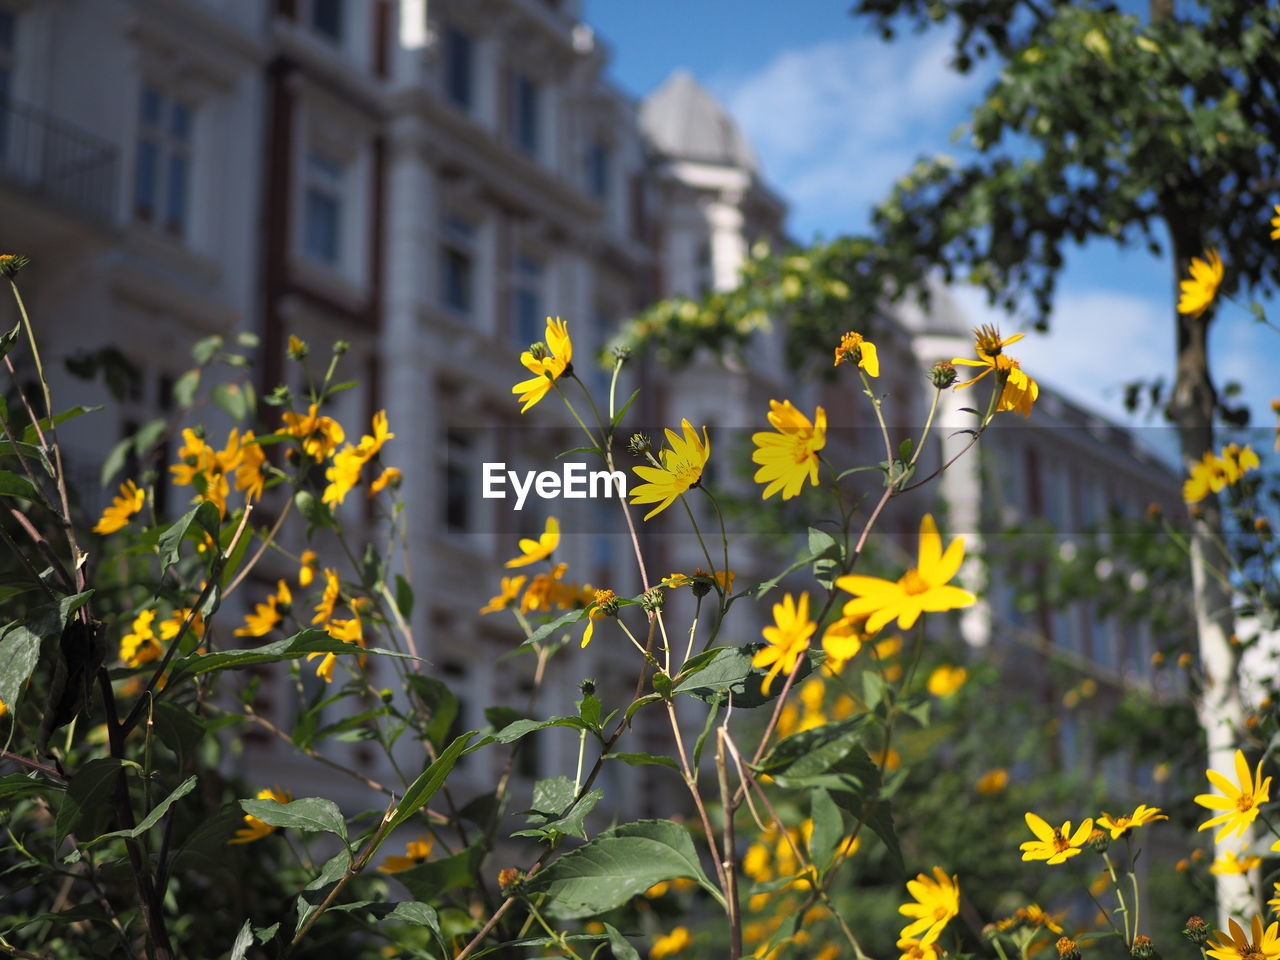 CLOSE-UP OF YELLOW FLOWERING PLANTS AGAINST BUILDINGS